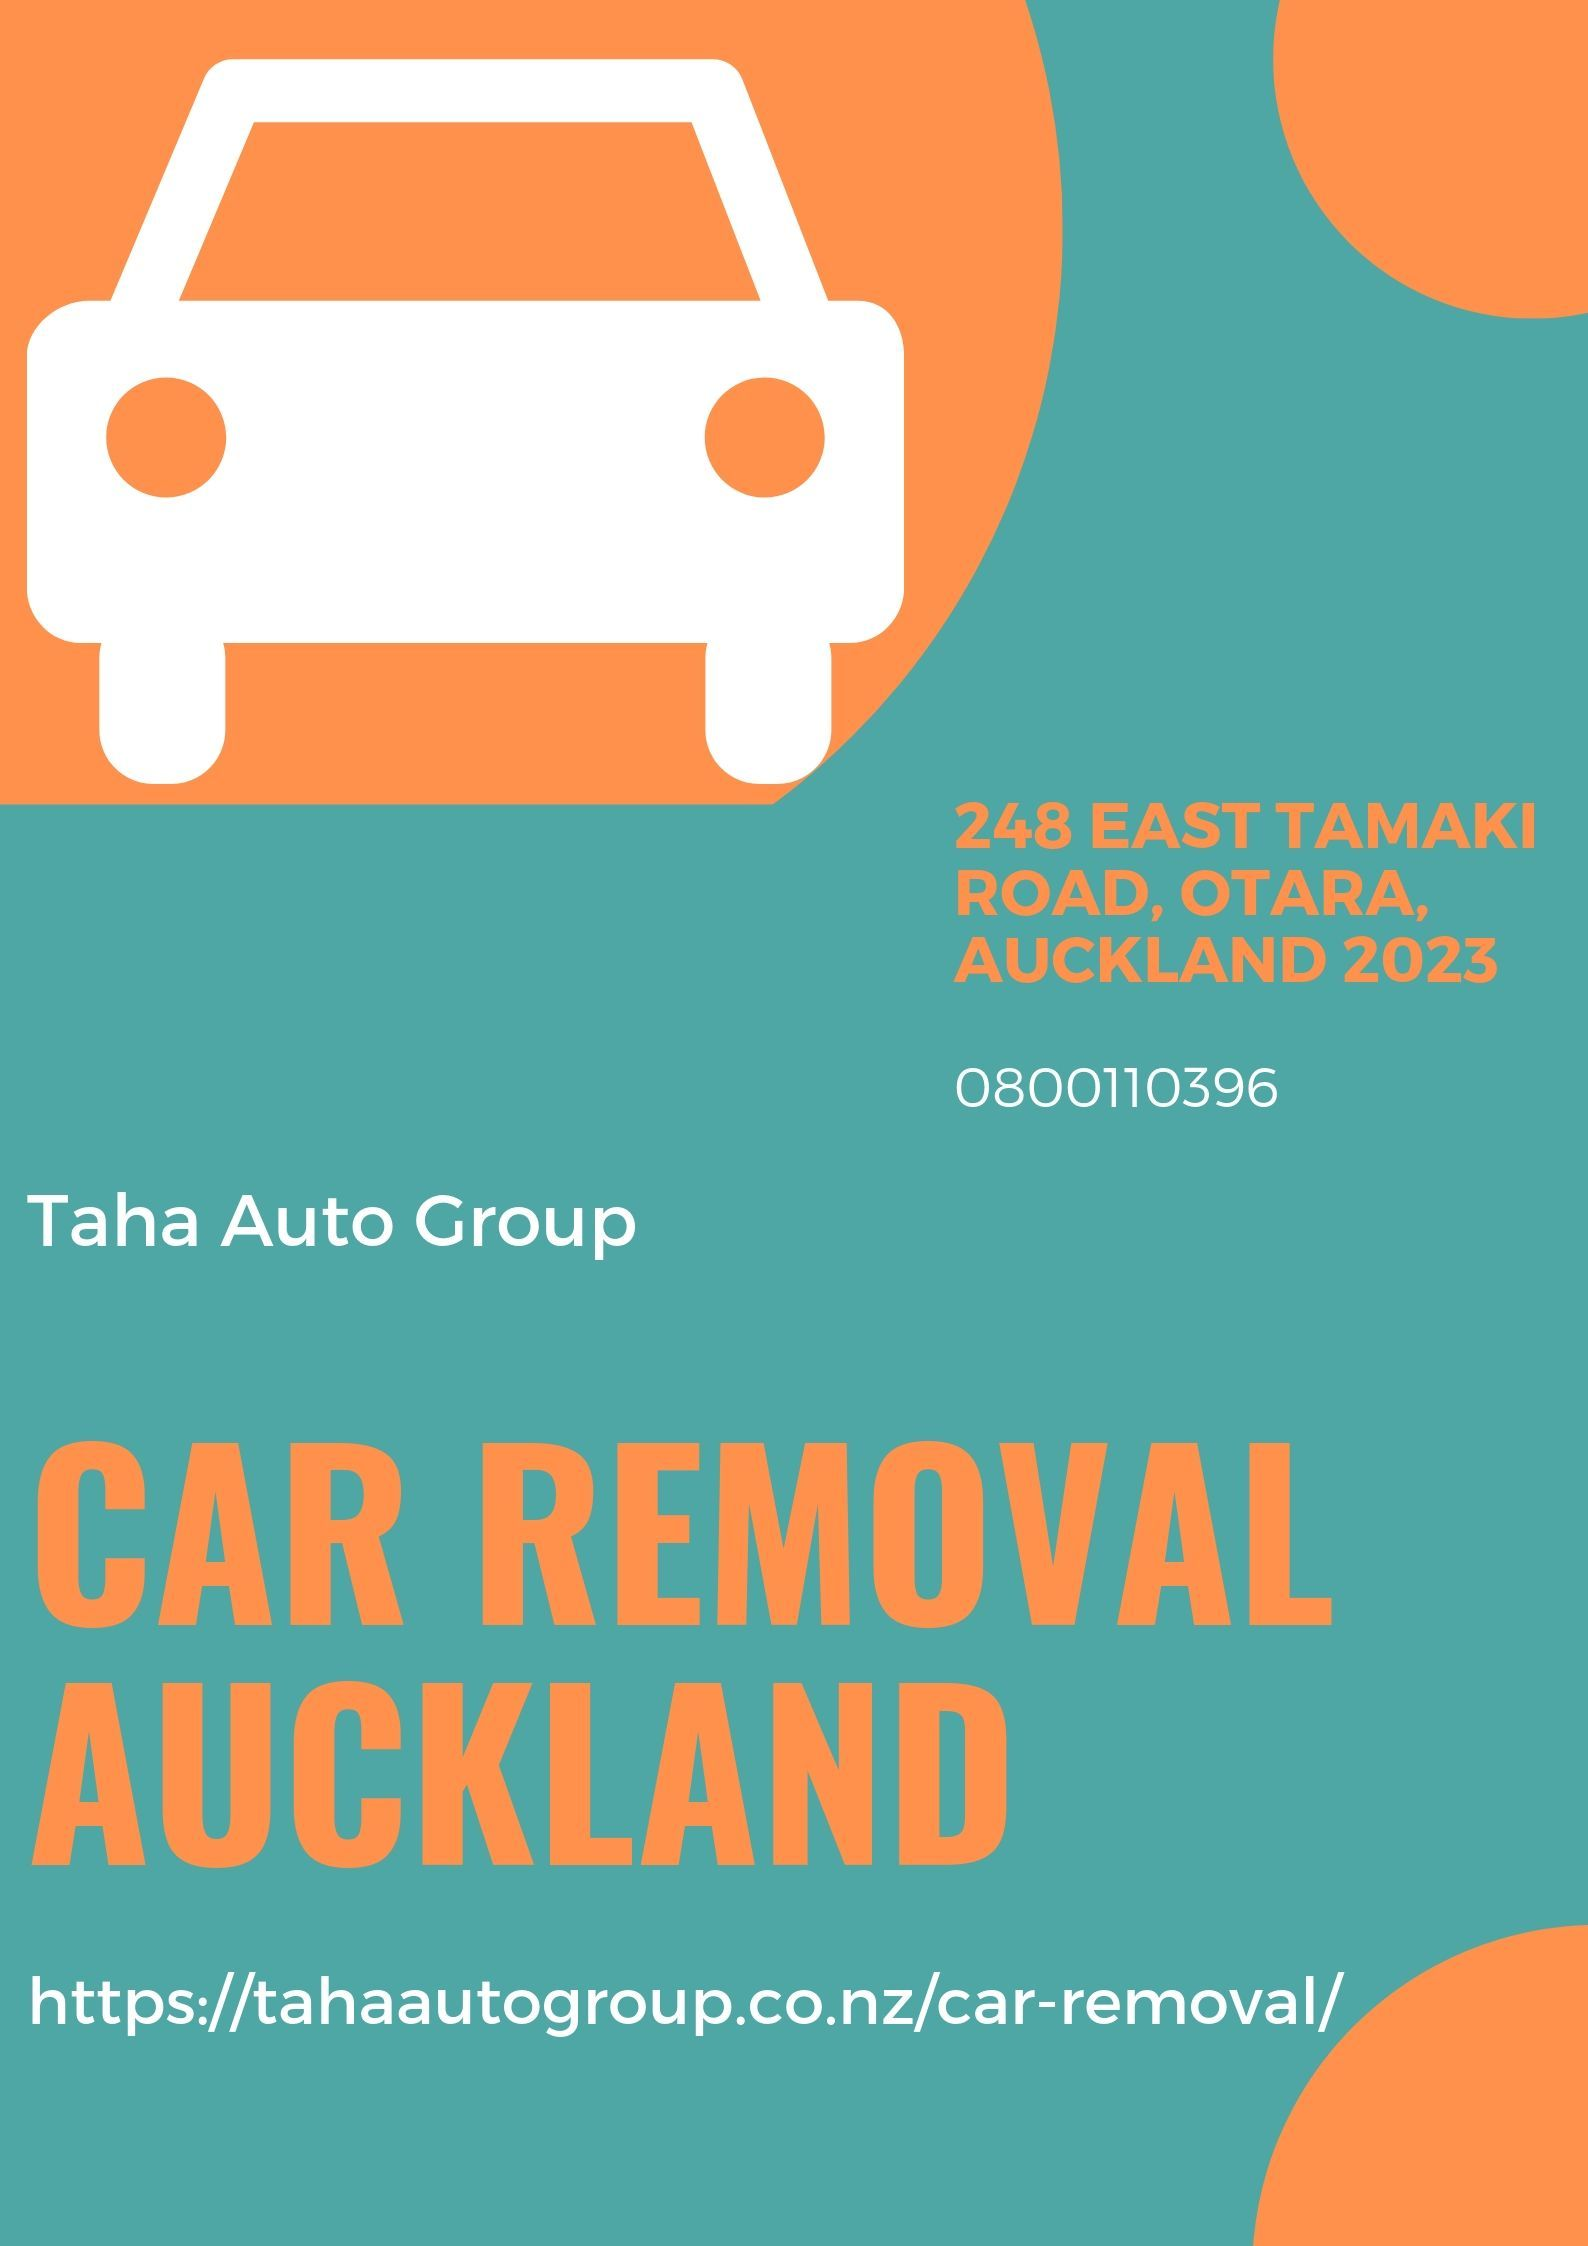 Taha Auto Group Gives The Best Car Removal In Auckland Those Who